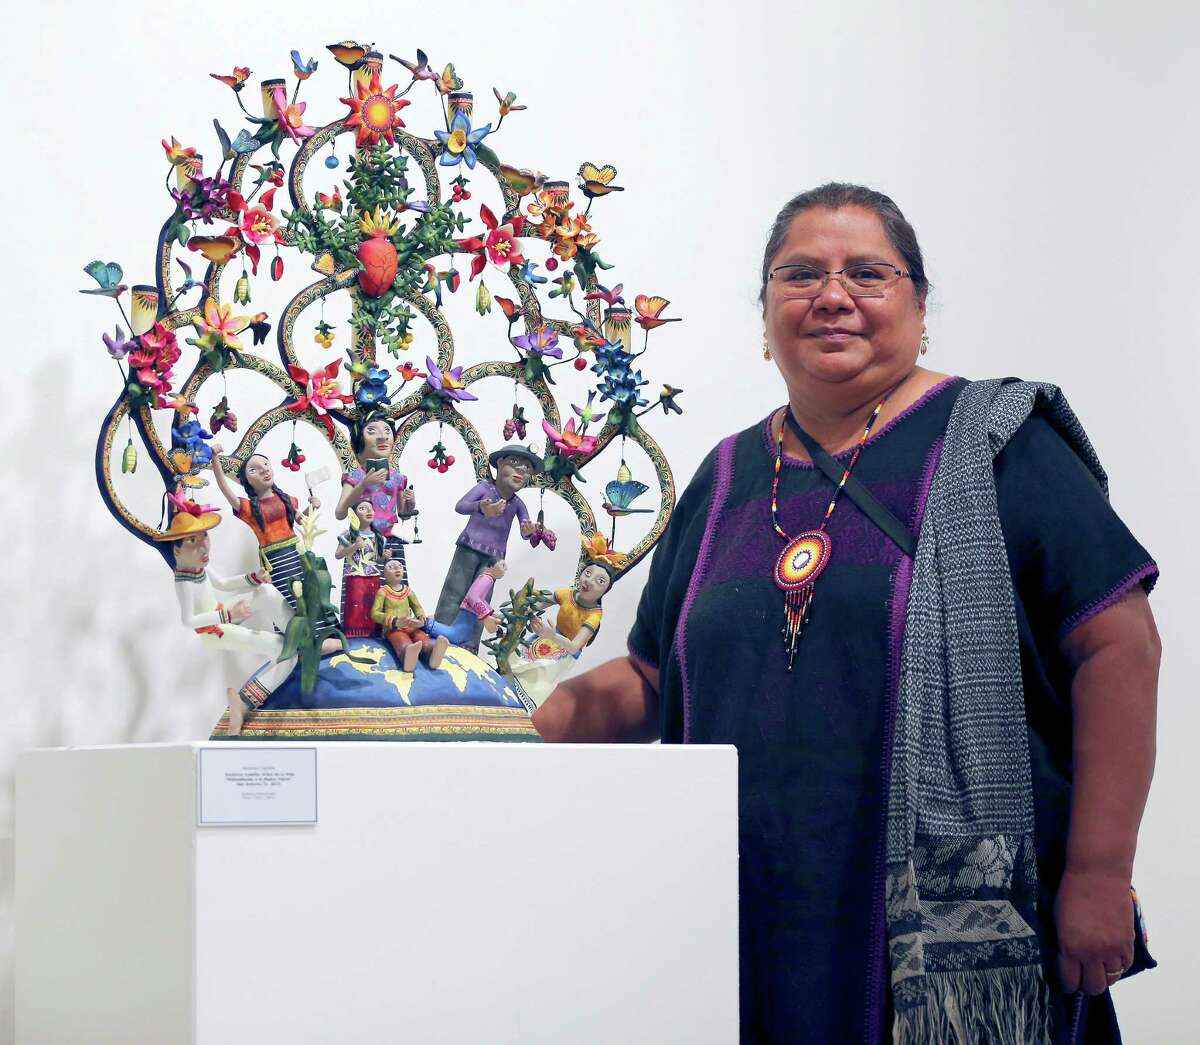 Veronica Castillo, a folk artist who was awarded an NEA National Heritage Fellowship in 2013 poses Oct. 6, 2015 next to one of her sculptures on display at the TAMU-SA Centro de Artes.